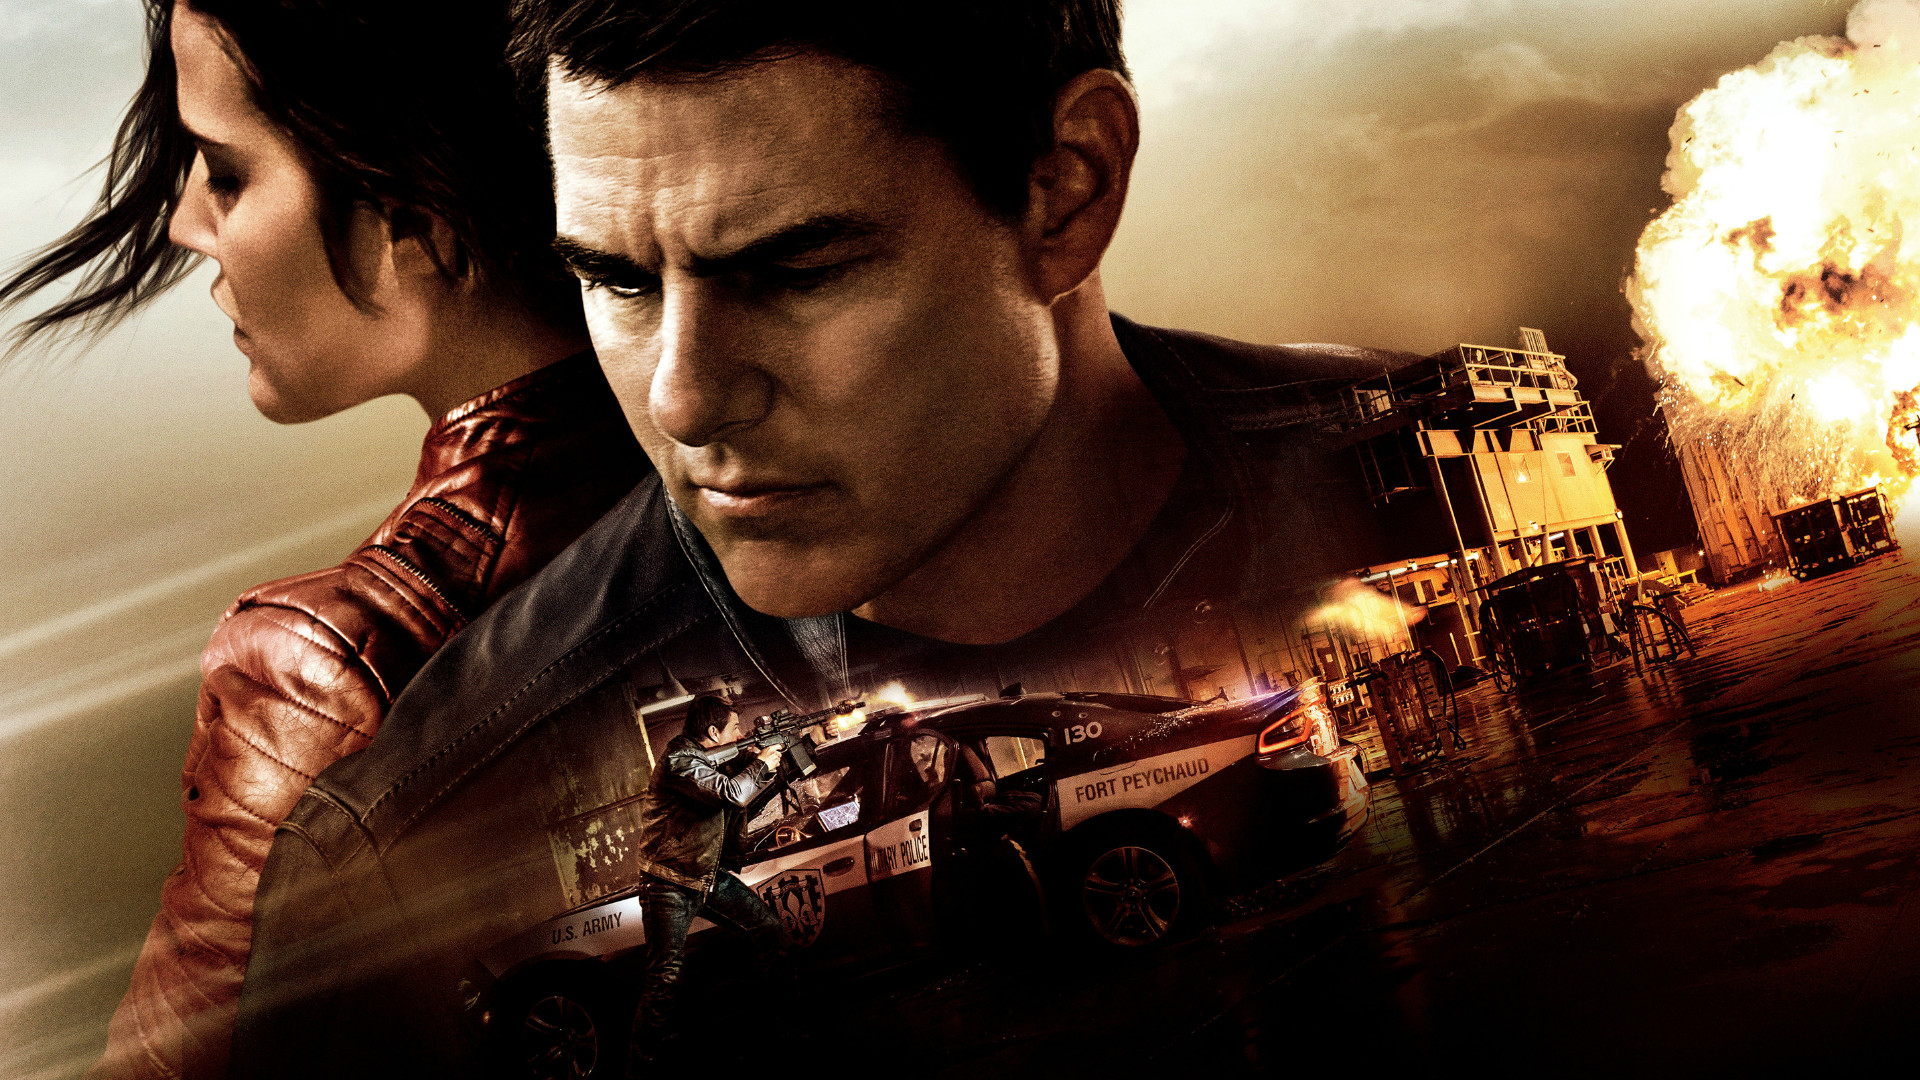 Tom Cruise and Colbie Smulders in Jack Reacher.